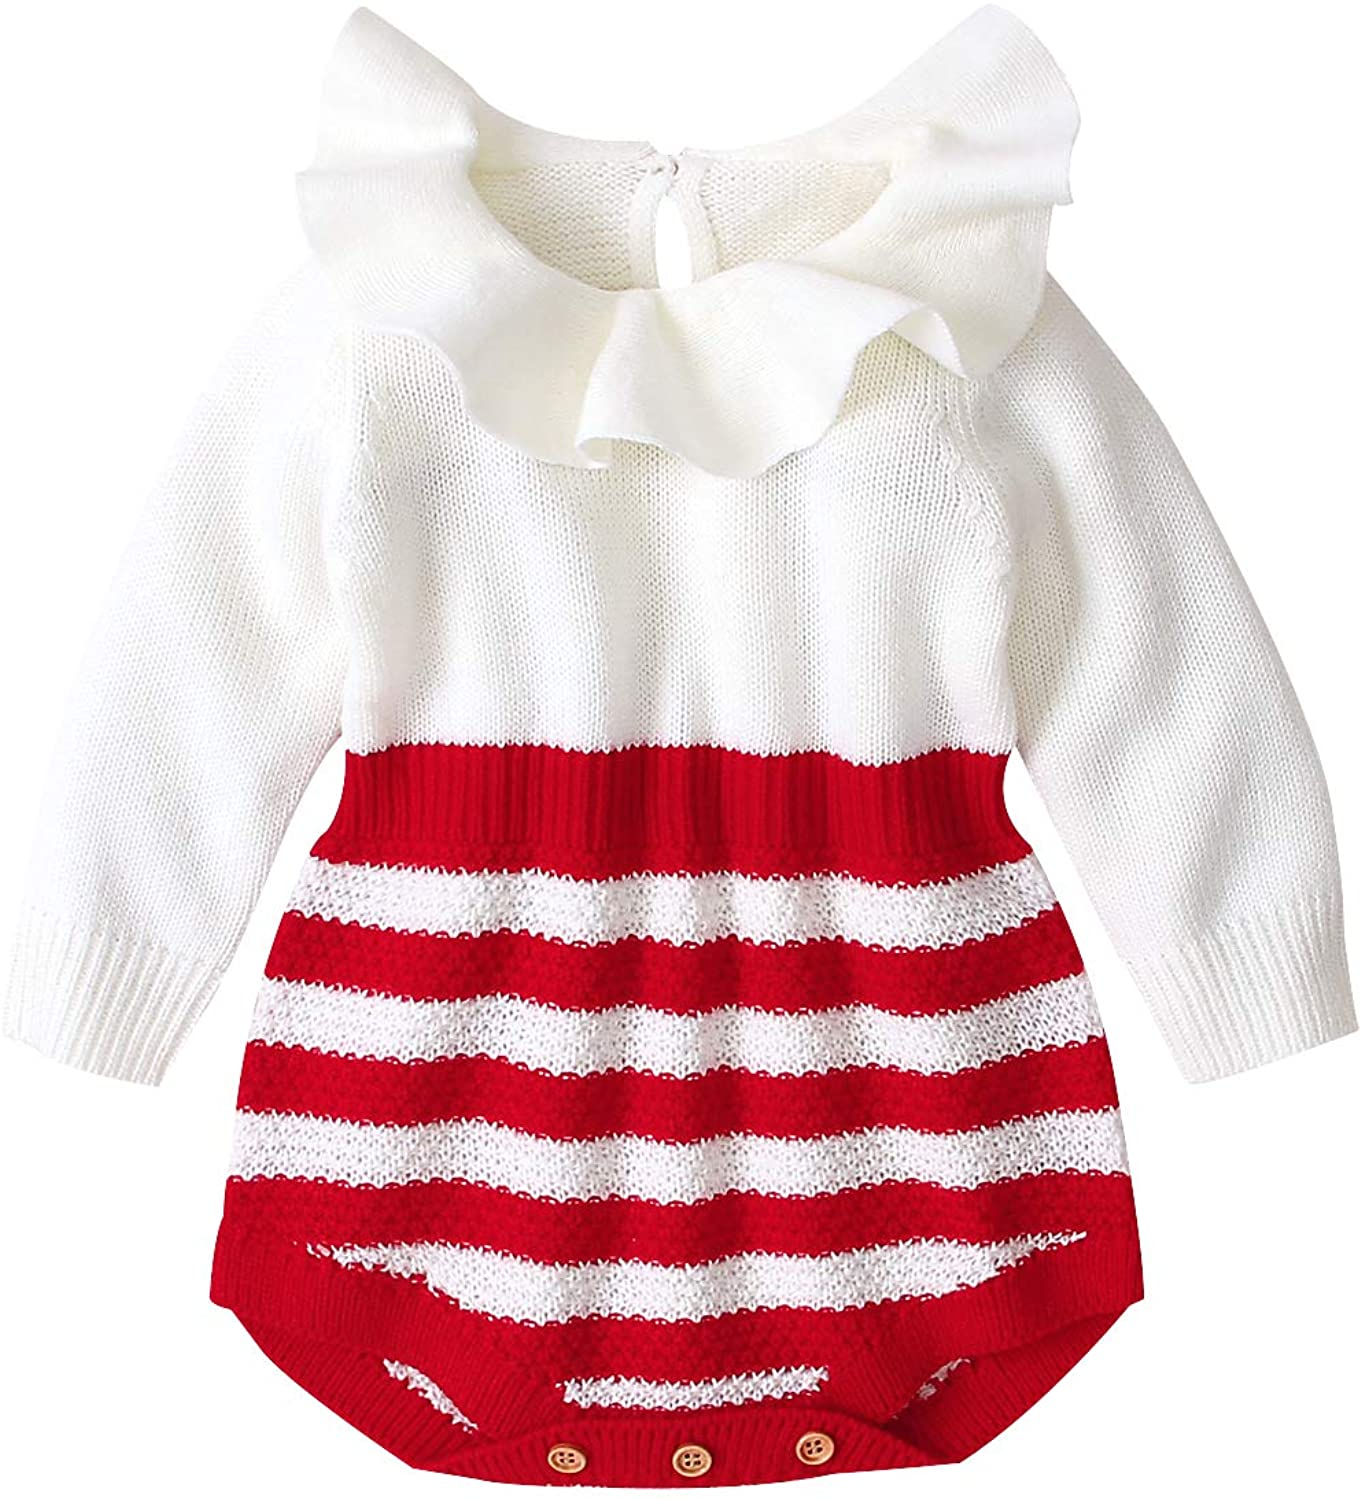 gkouHuih Newborn Babys Girls Long Sleeve Knitted Romper Jumpsuit Bodysuit Striped Ruffle Sweater